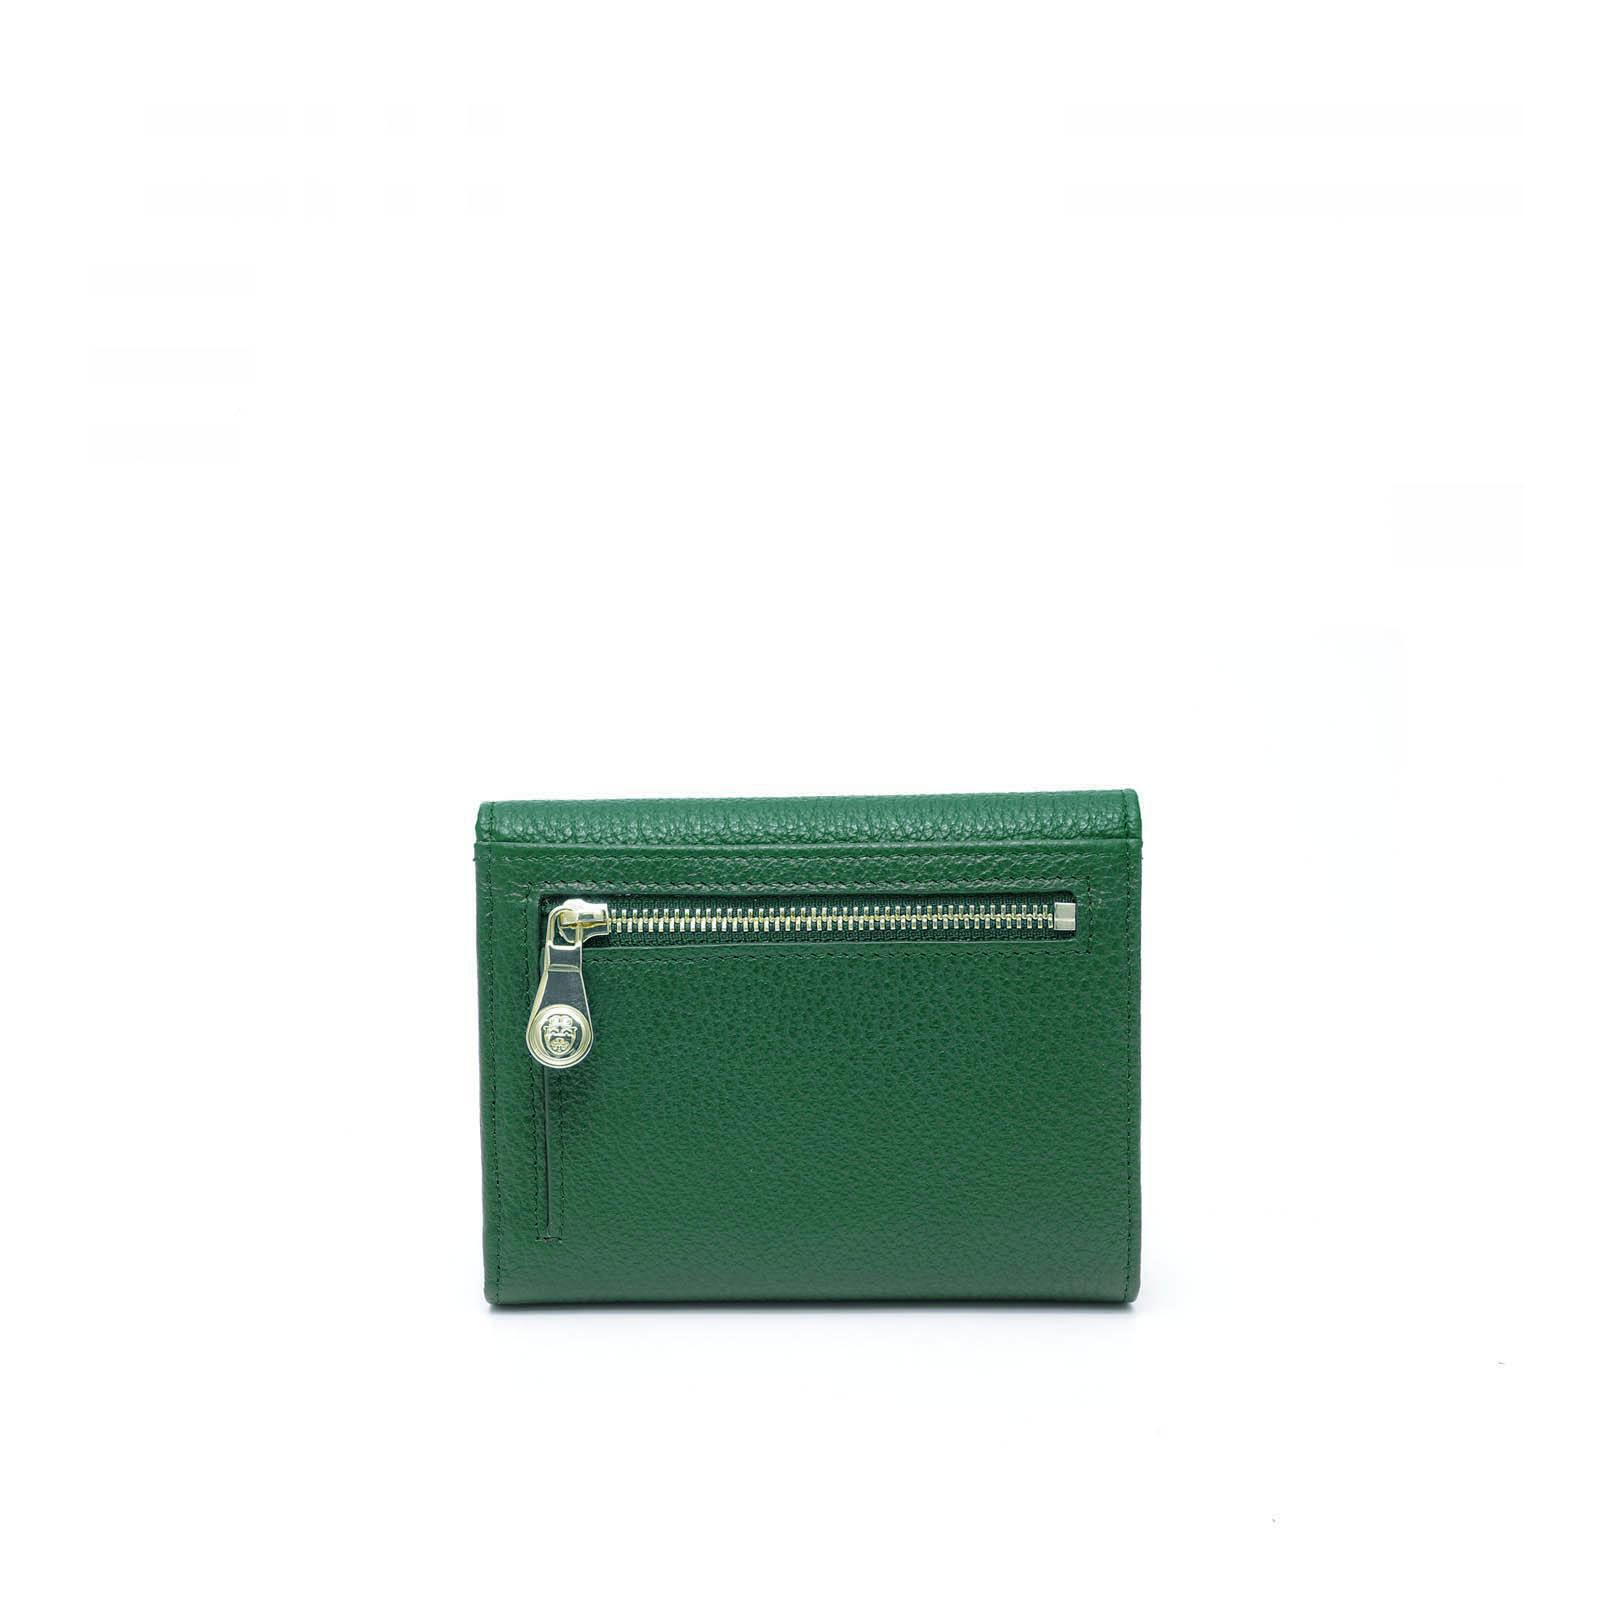 Portefeuille Femmes Small Continental Tiffany Vert